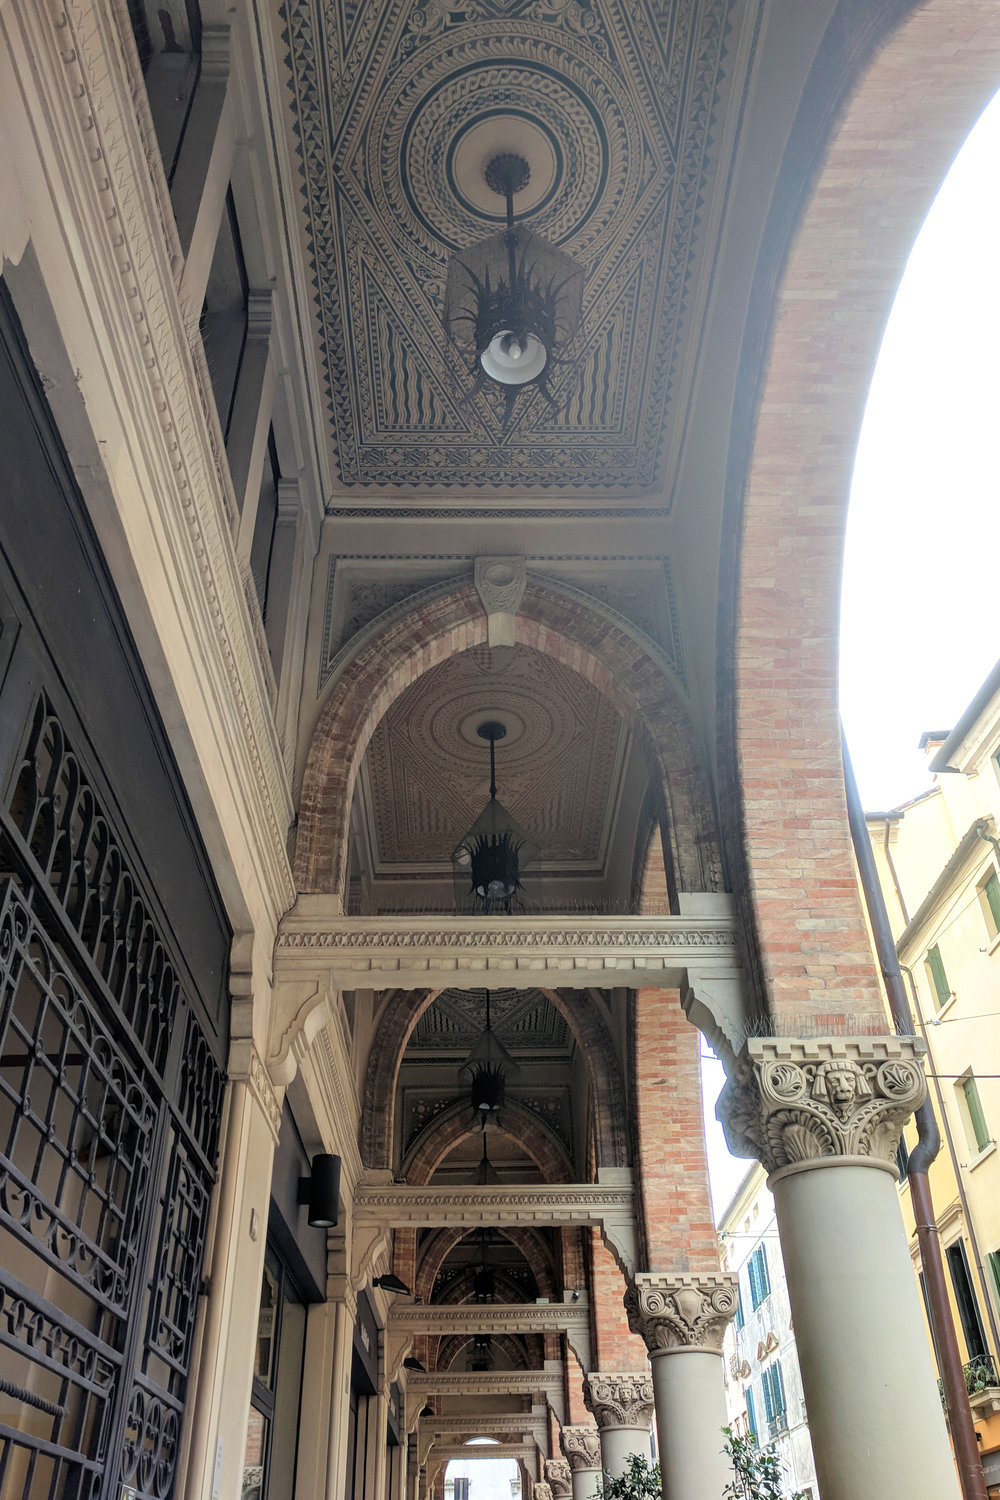 Architectural details and ornate ceiling in Treviso Italy. Image by Jamie House